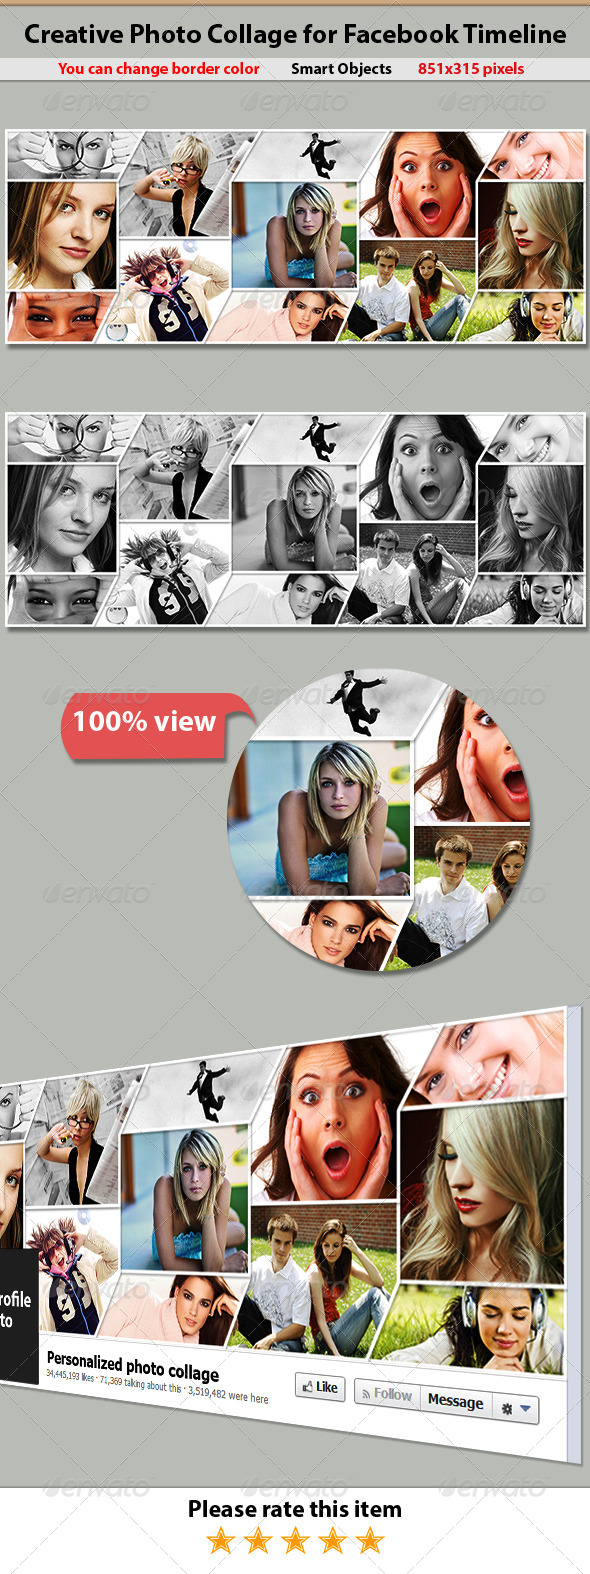 Creative Photo Collage for Facebook Timeline